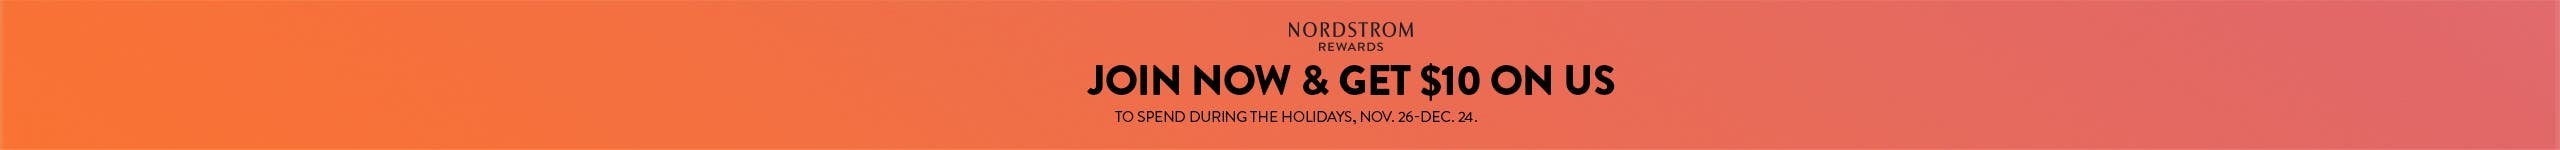 Join Nordstrom Rewards now and get $10 to spend during the holidays, November 26 through December 24.